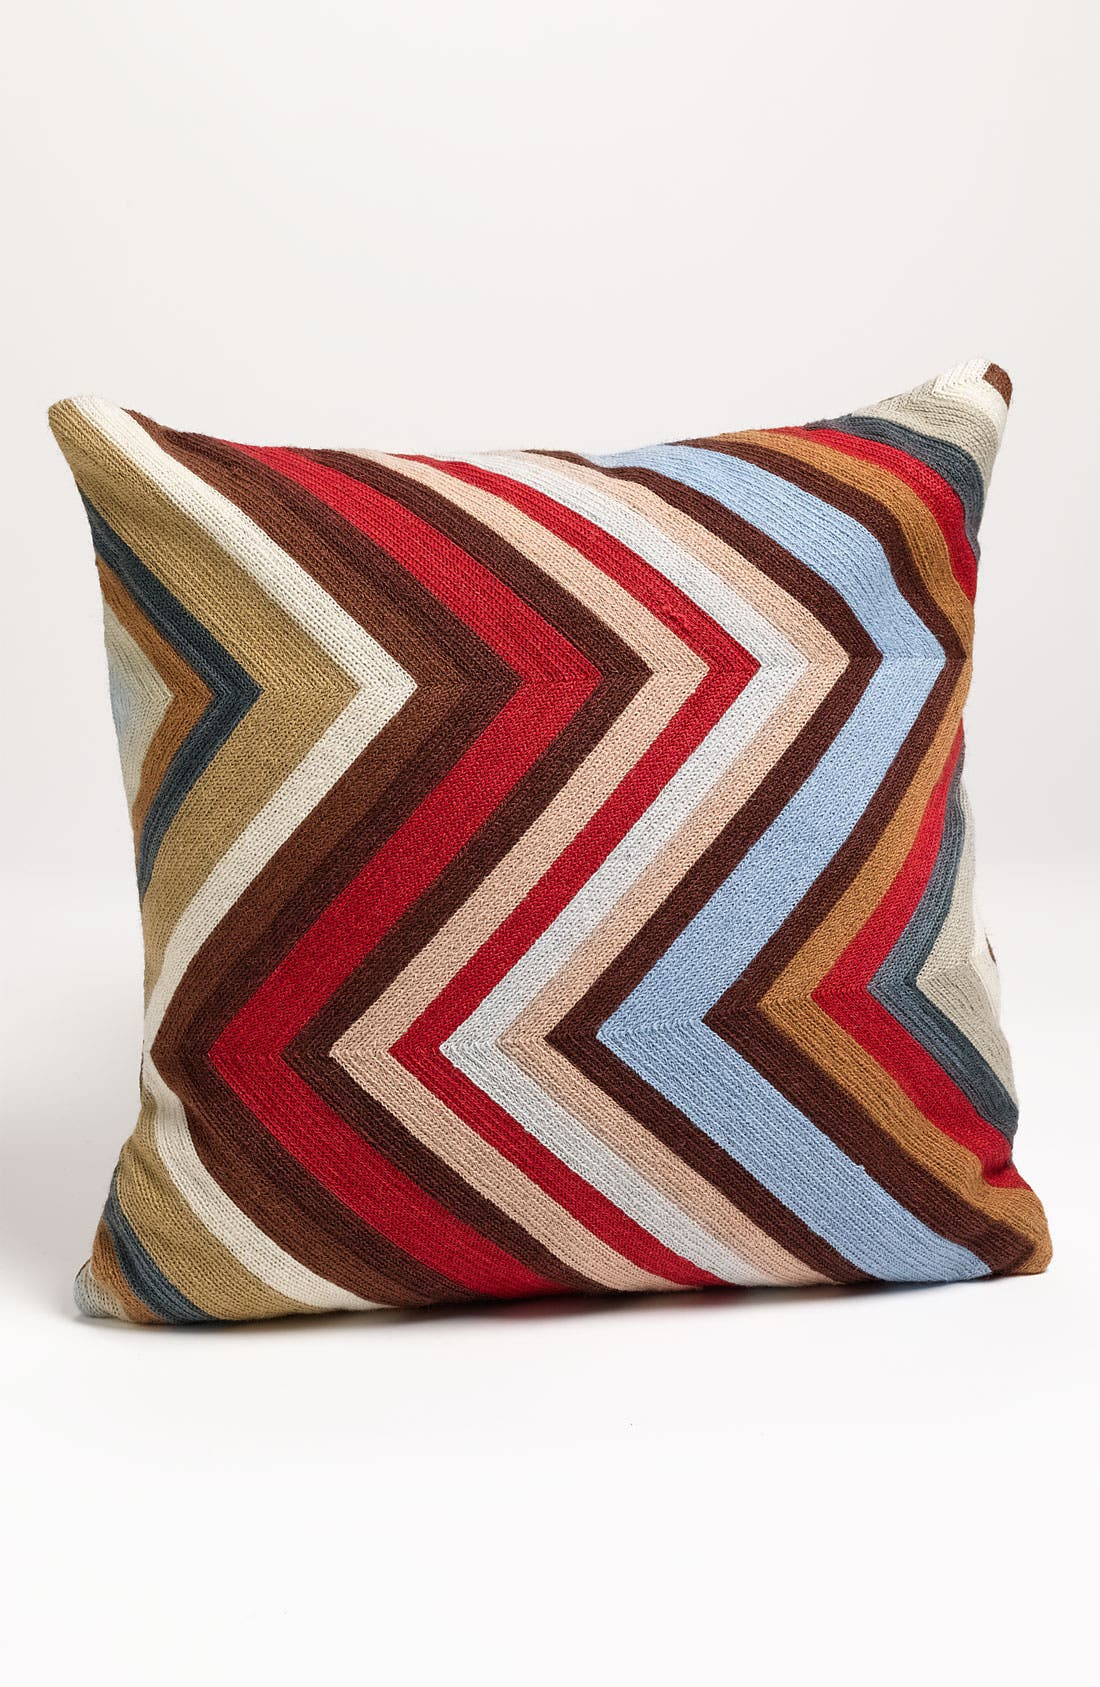 Main Image - Mina Victory 'Chevron' Pillow